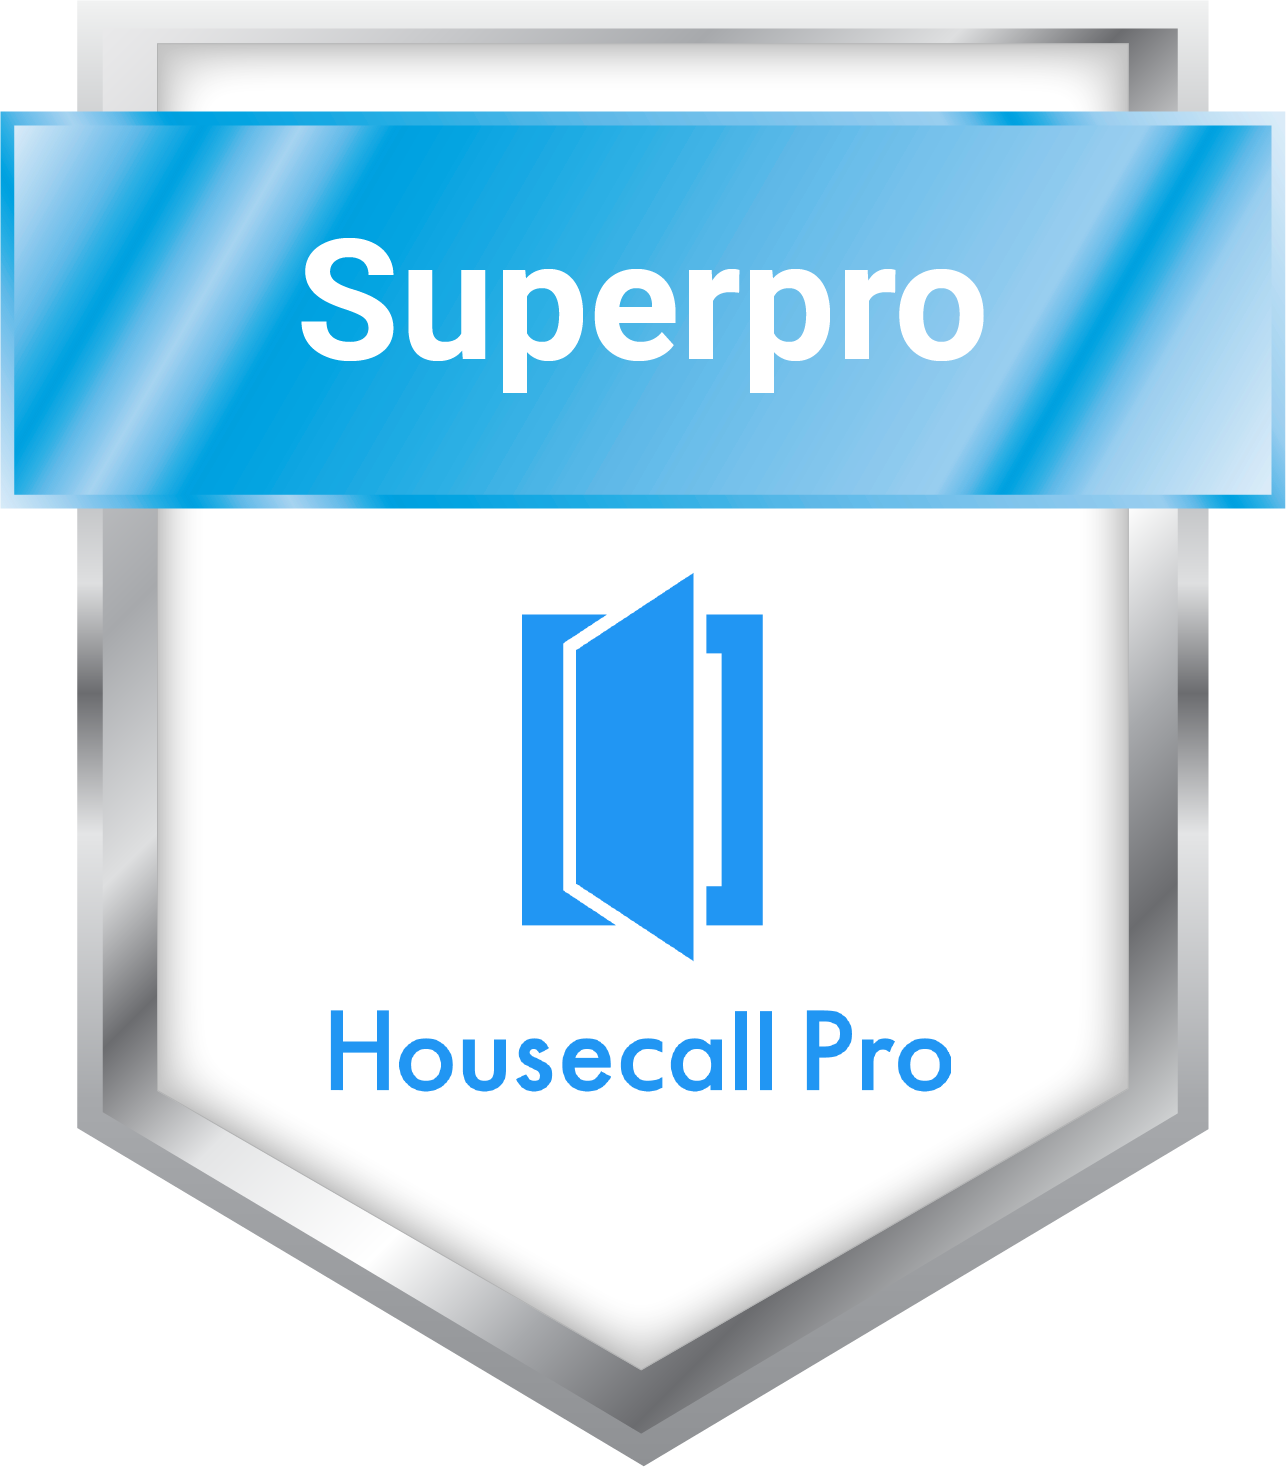 az's best pipe doctor is a housecall pro superpro